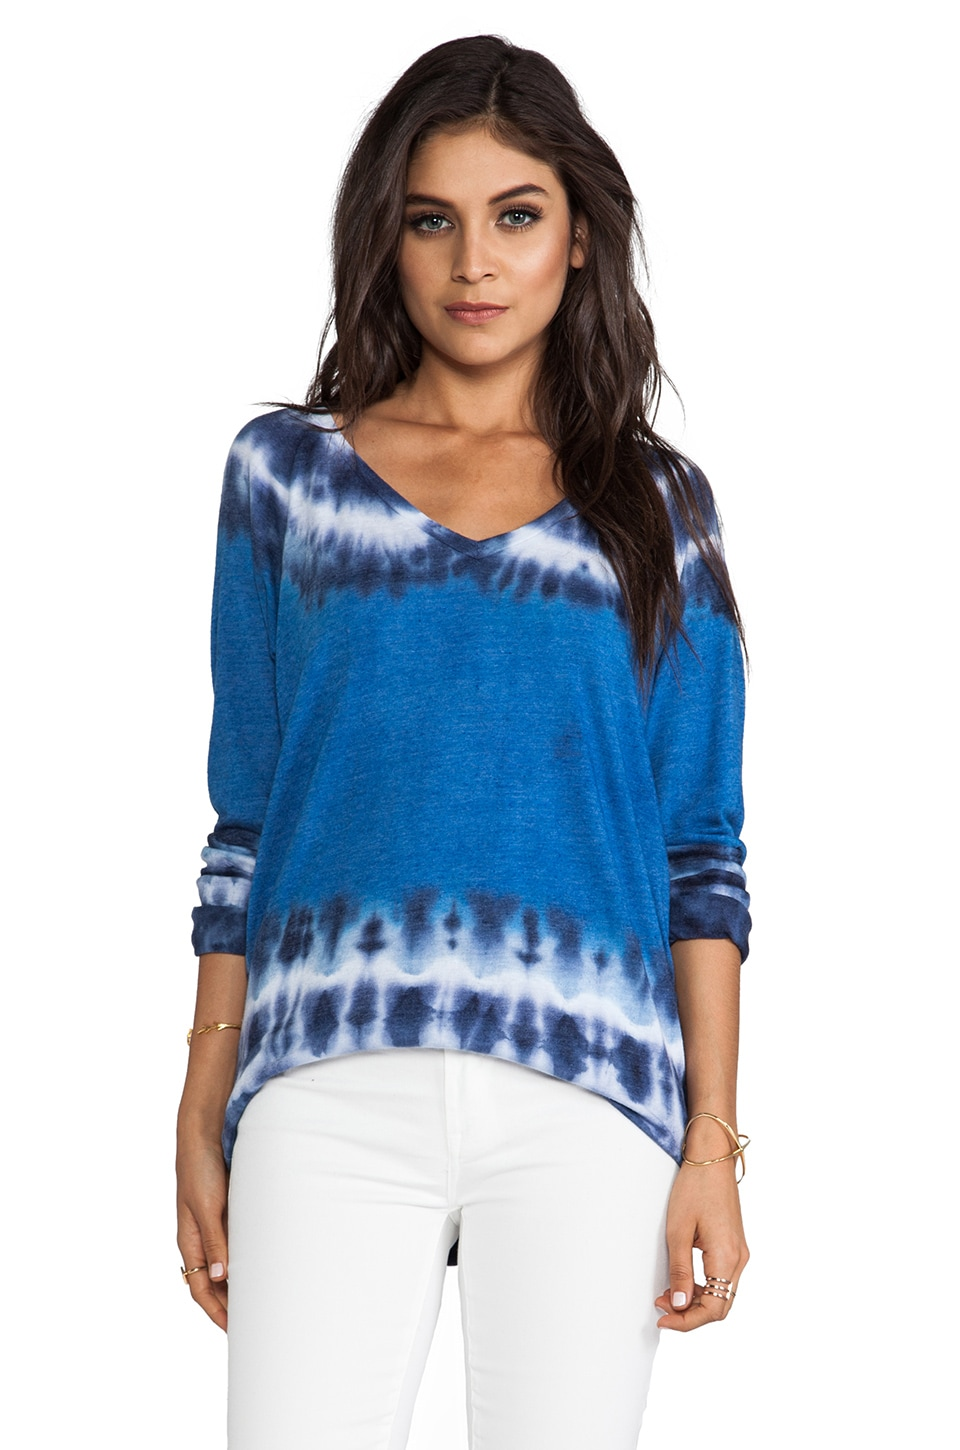 C&C California V-Neck Raglan Sweatshirt Tie Dye in Mirage